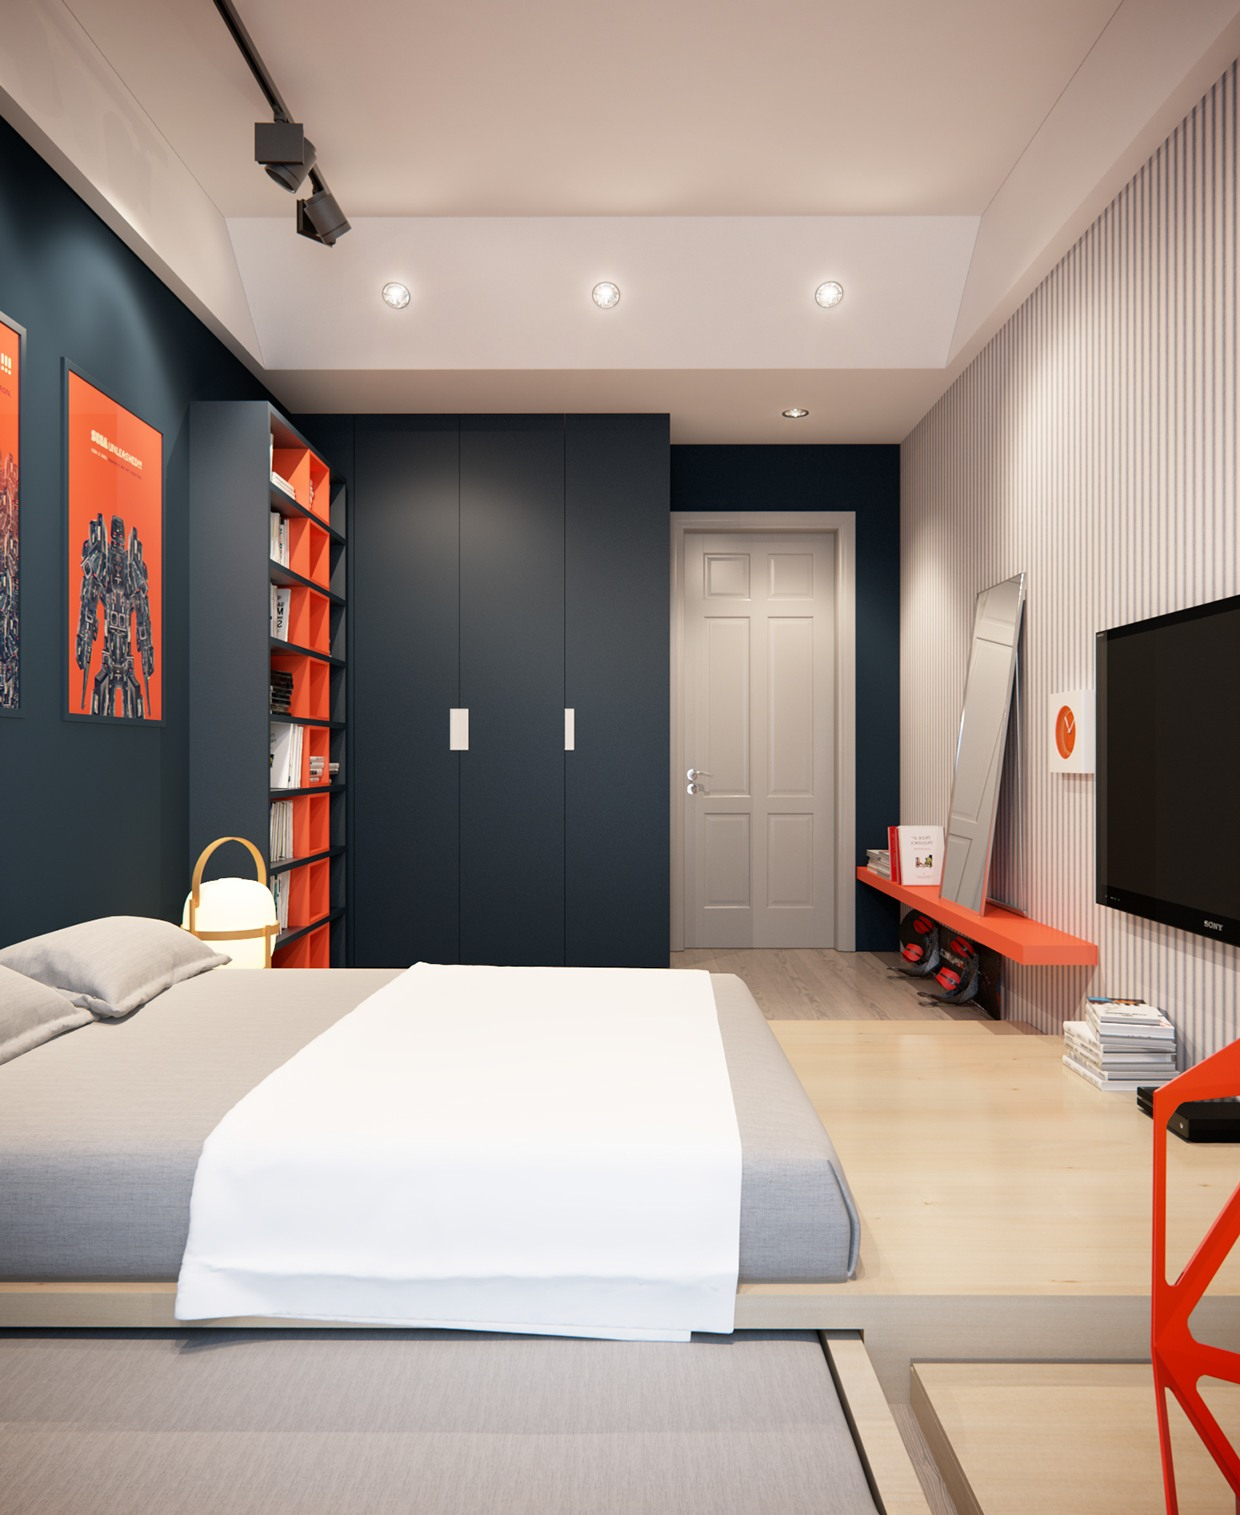 Boys bedroom design interior design ideas for Interior home design bedroom ideas